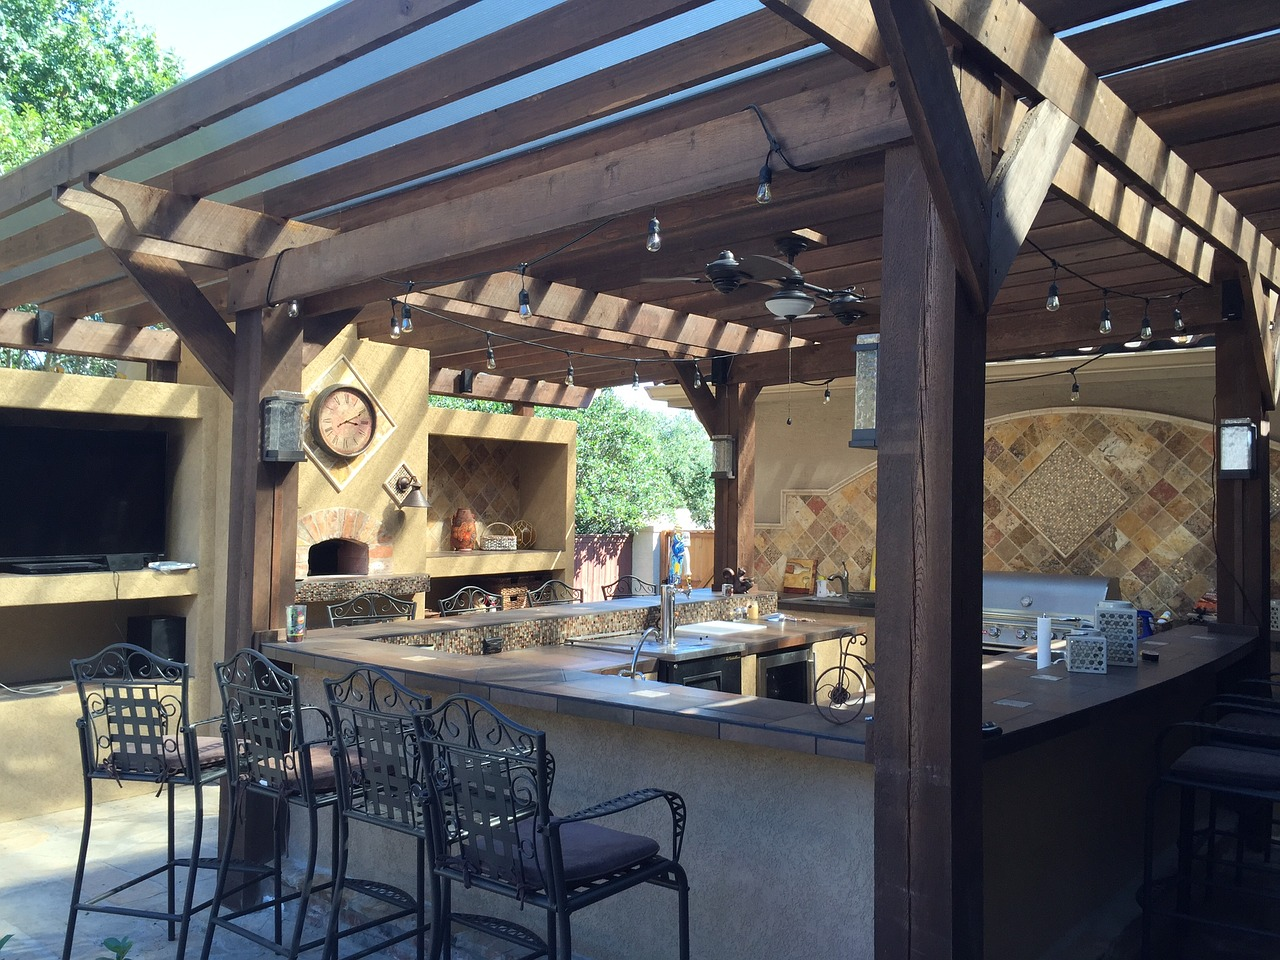 An outdoor kitchen can Add Value to your Home